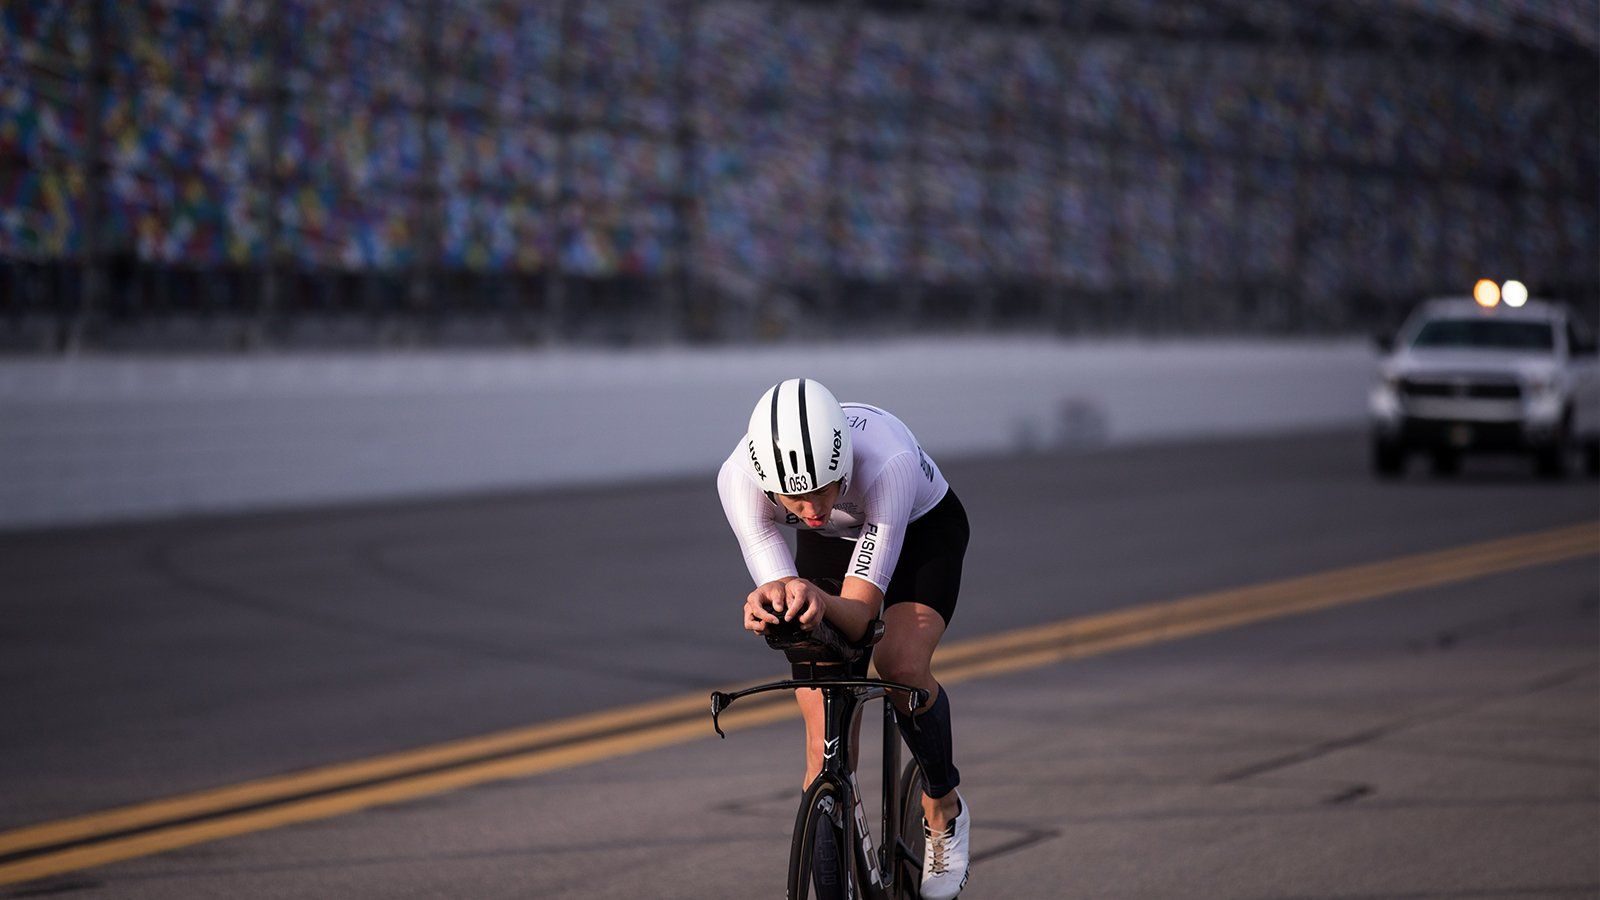 King of the Bike: Ditlev showcases cycling prowess in Daytona